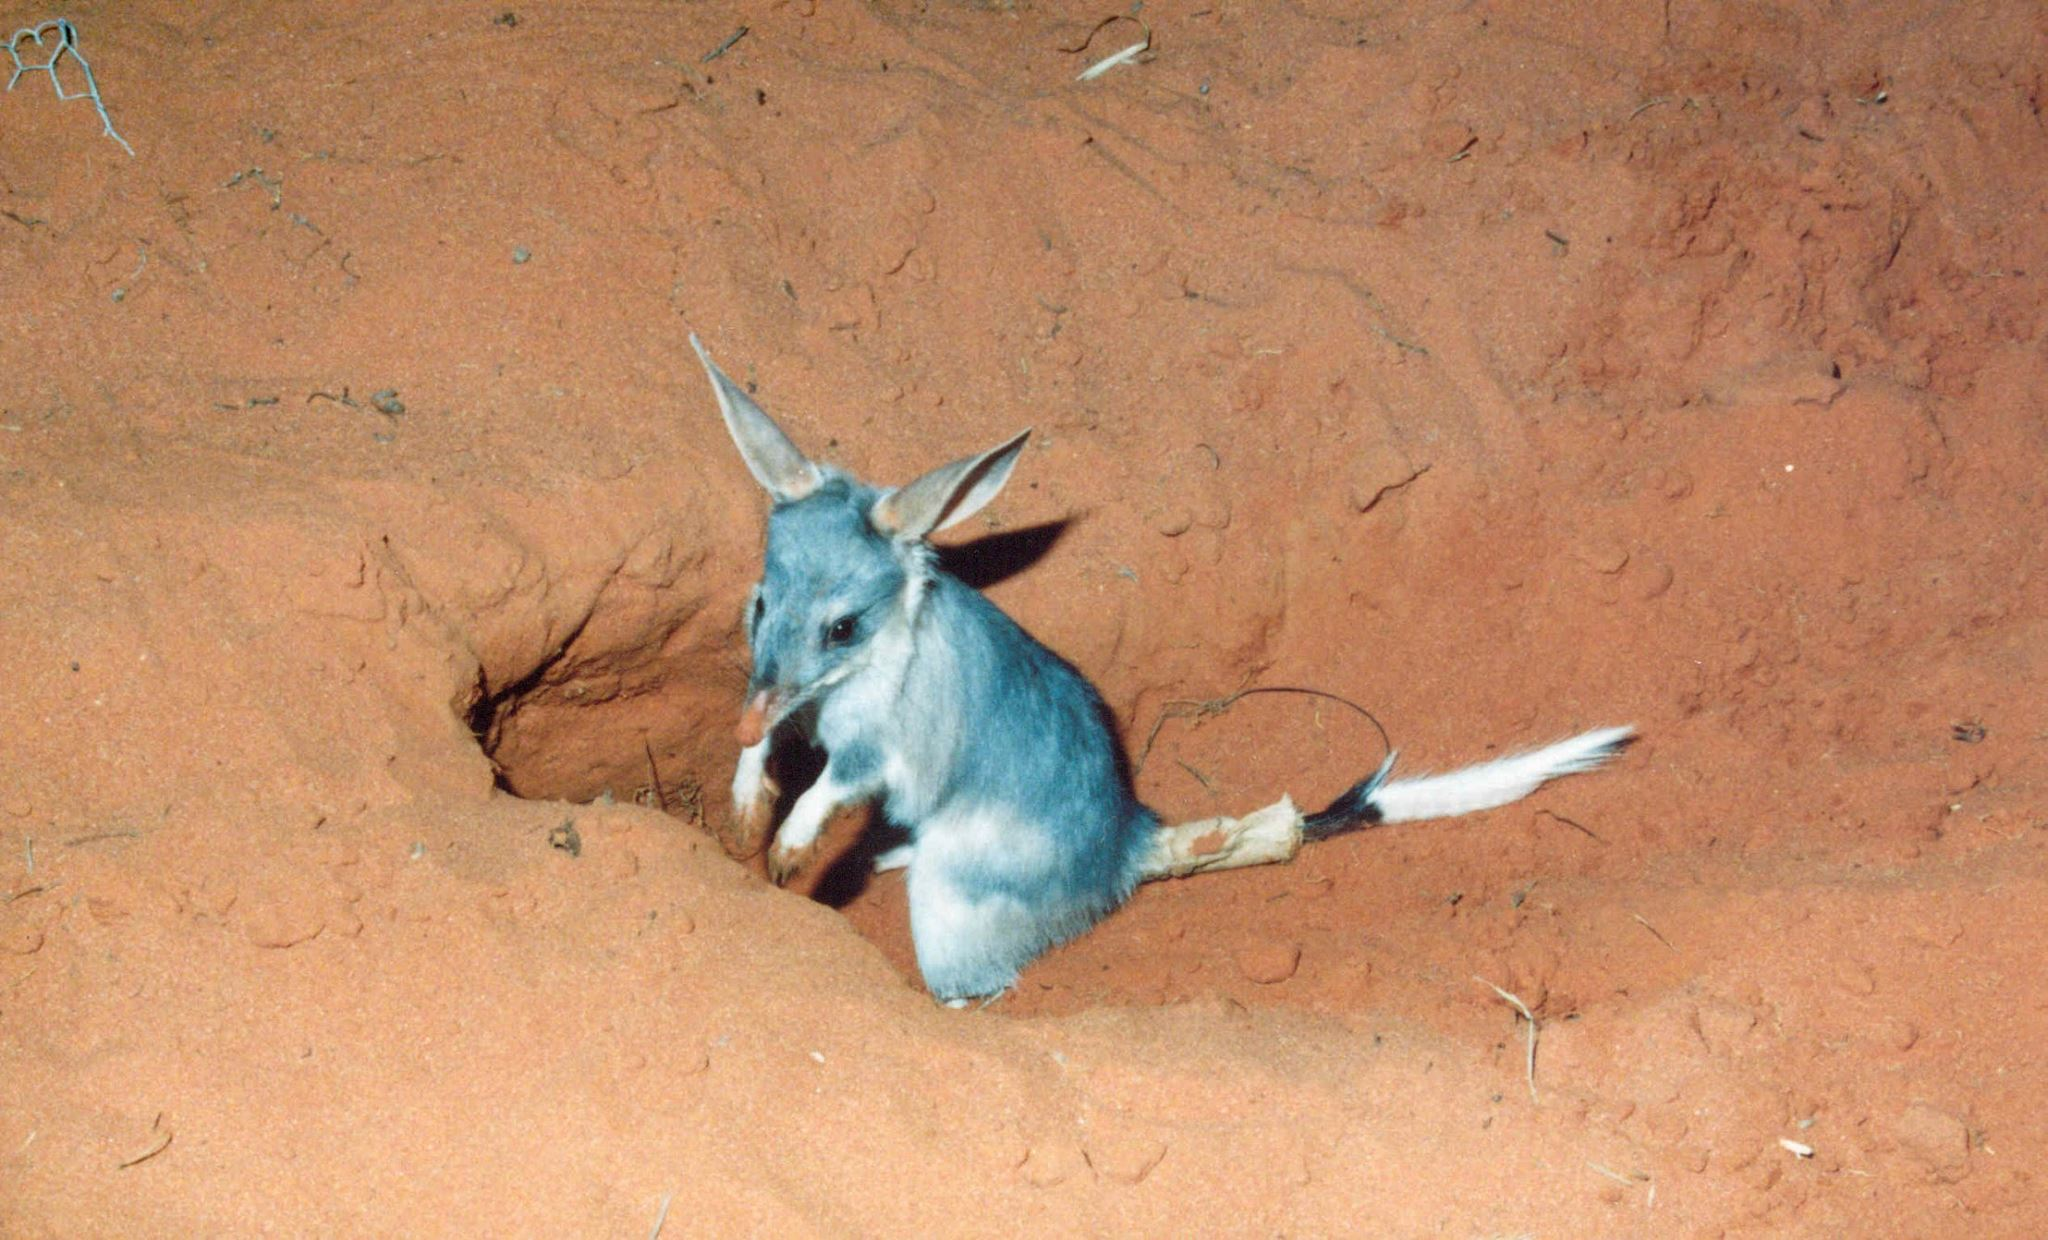 A bilby burrows into the red earth at Roxby Downs, photo courtesy of Arid Recovery